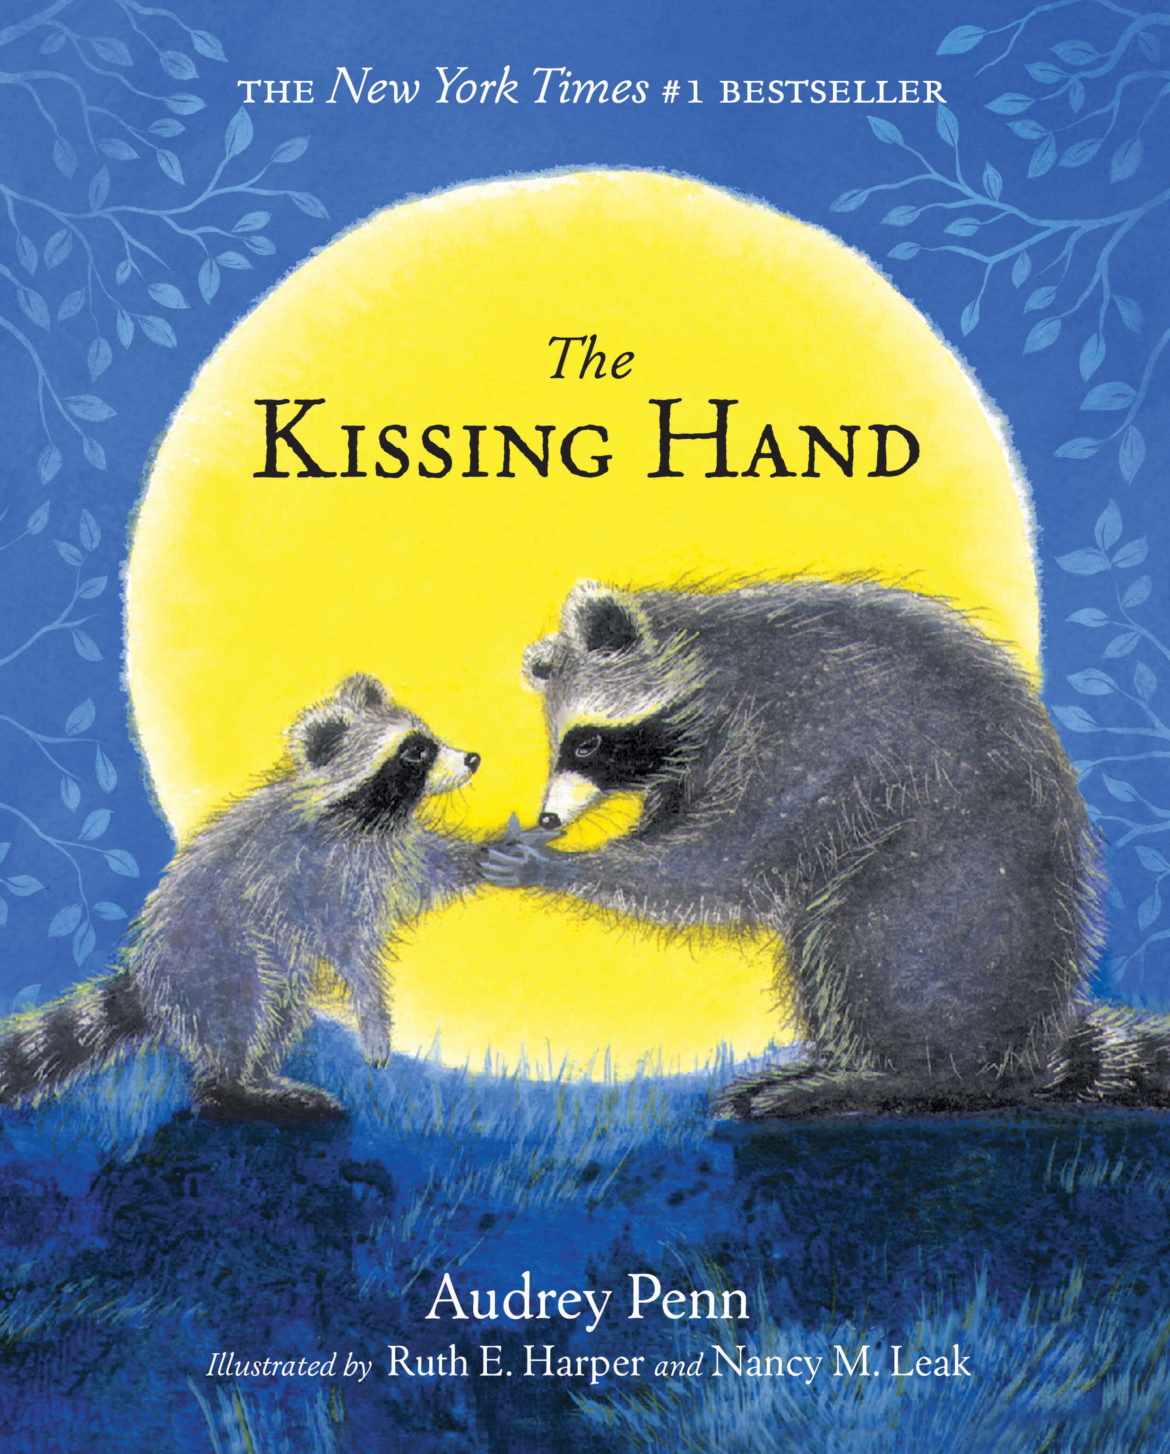 The Kissing Hand 2016 Book Cover